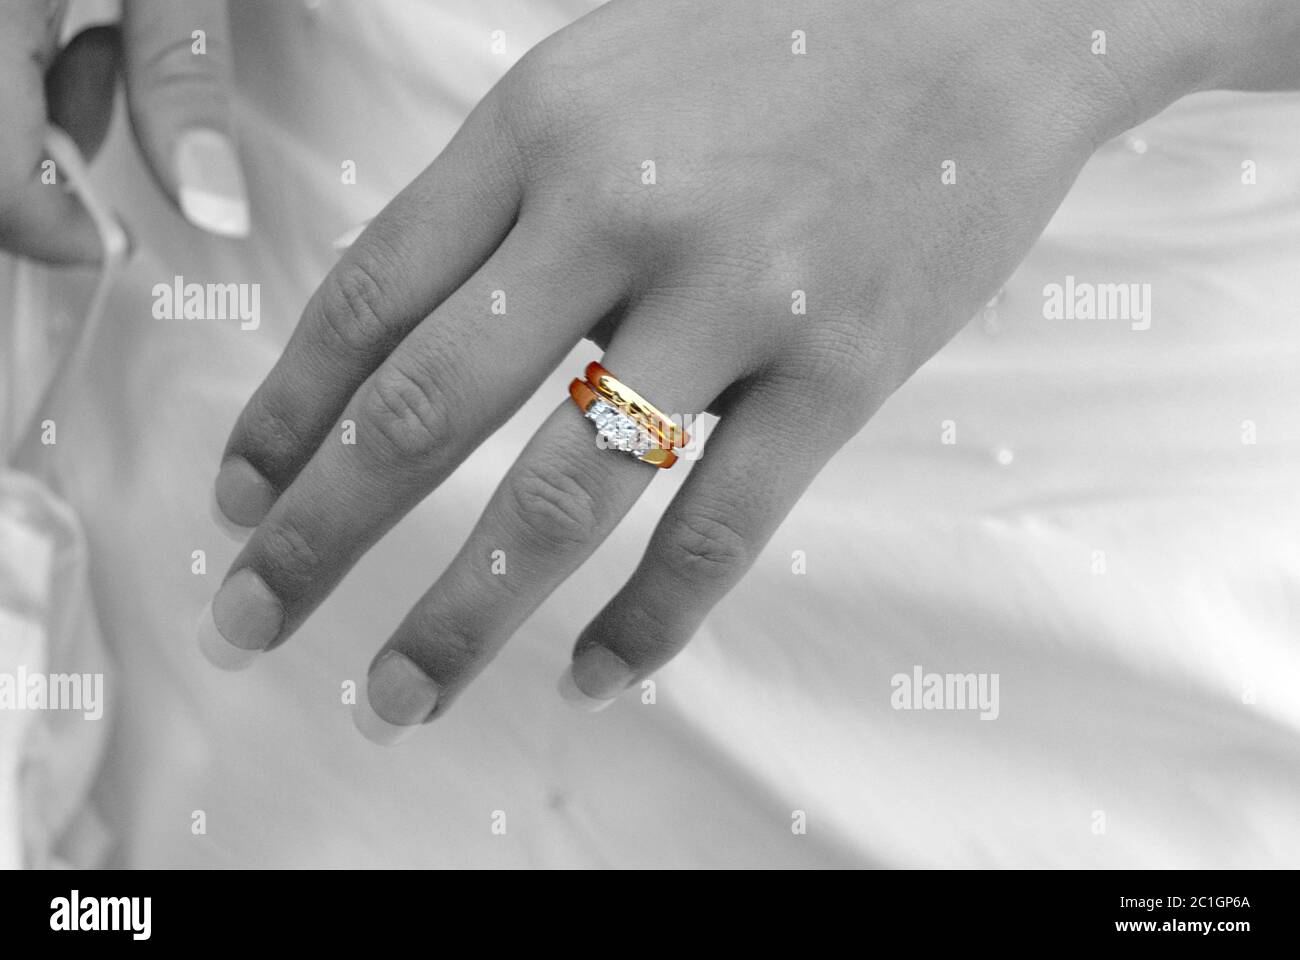 Third Finger Left Hand High Resolution Stock Photography And Images Alamy